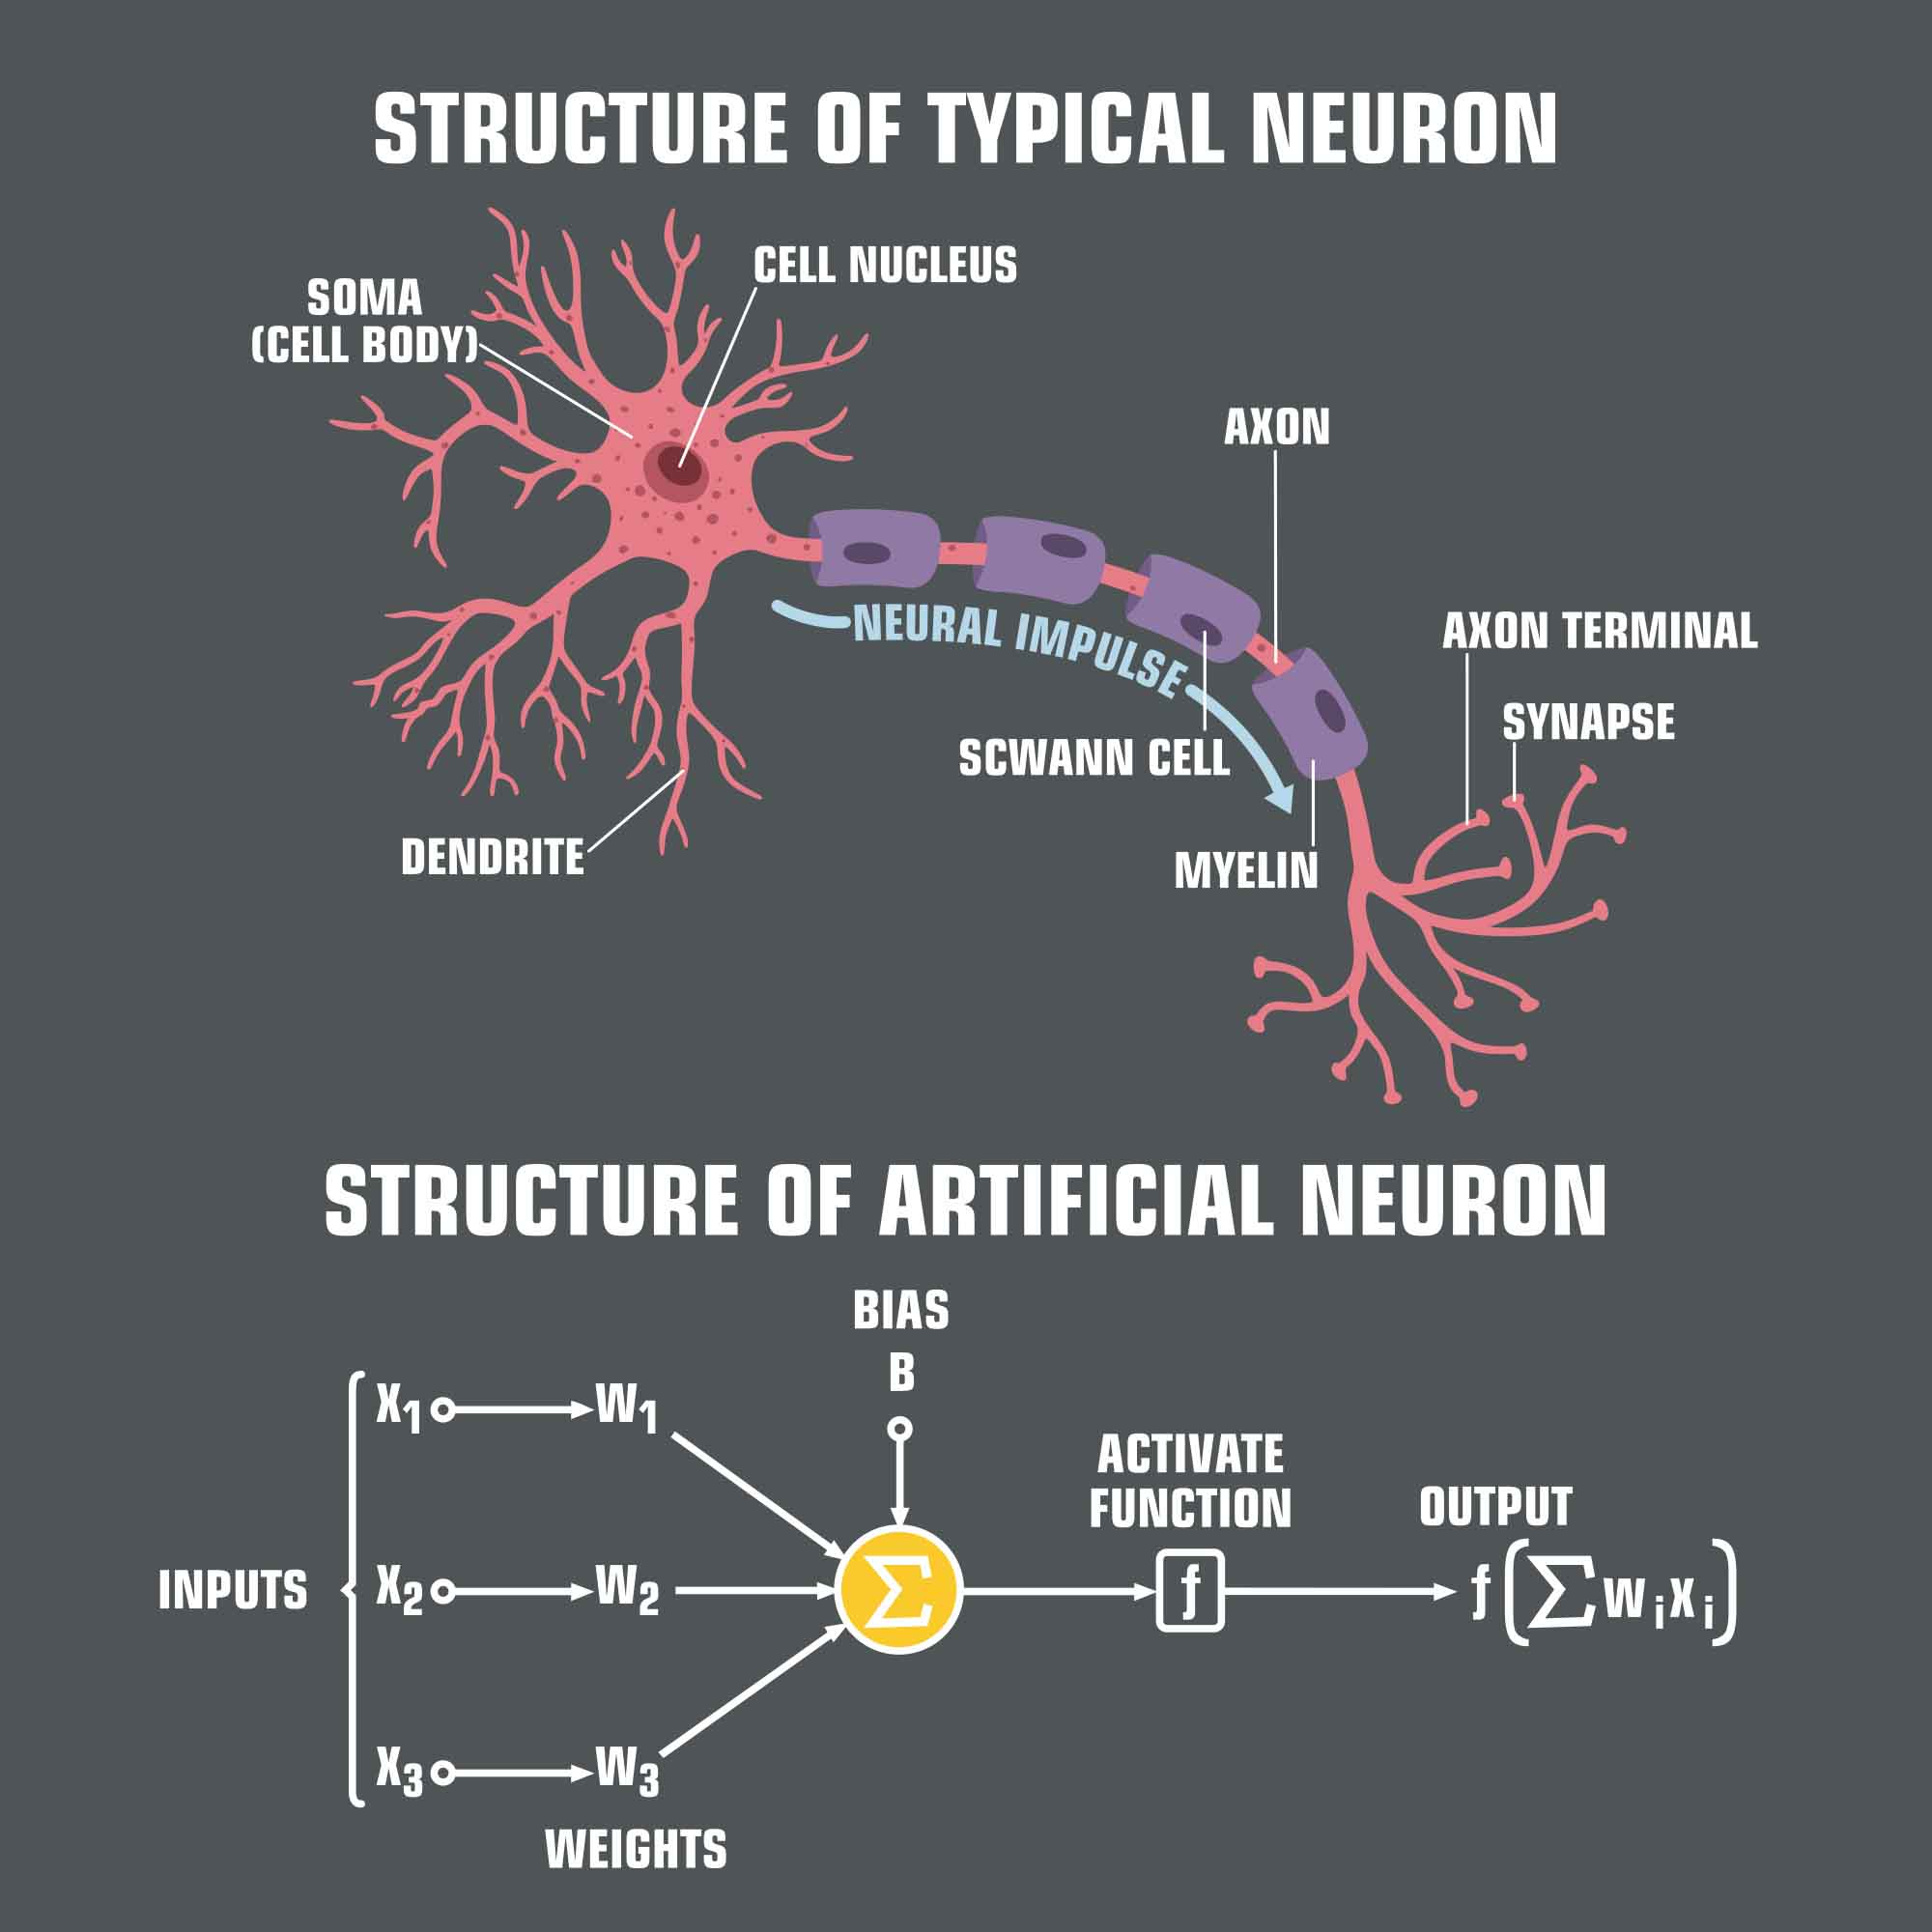 Structure of artificial neuron